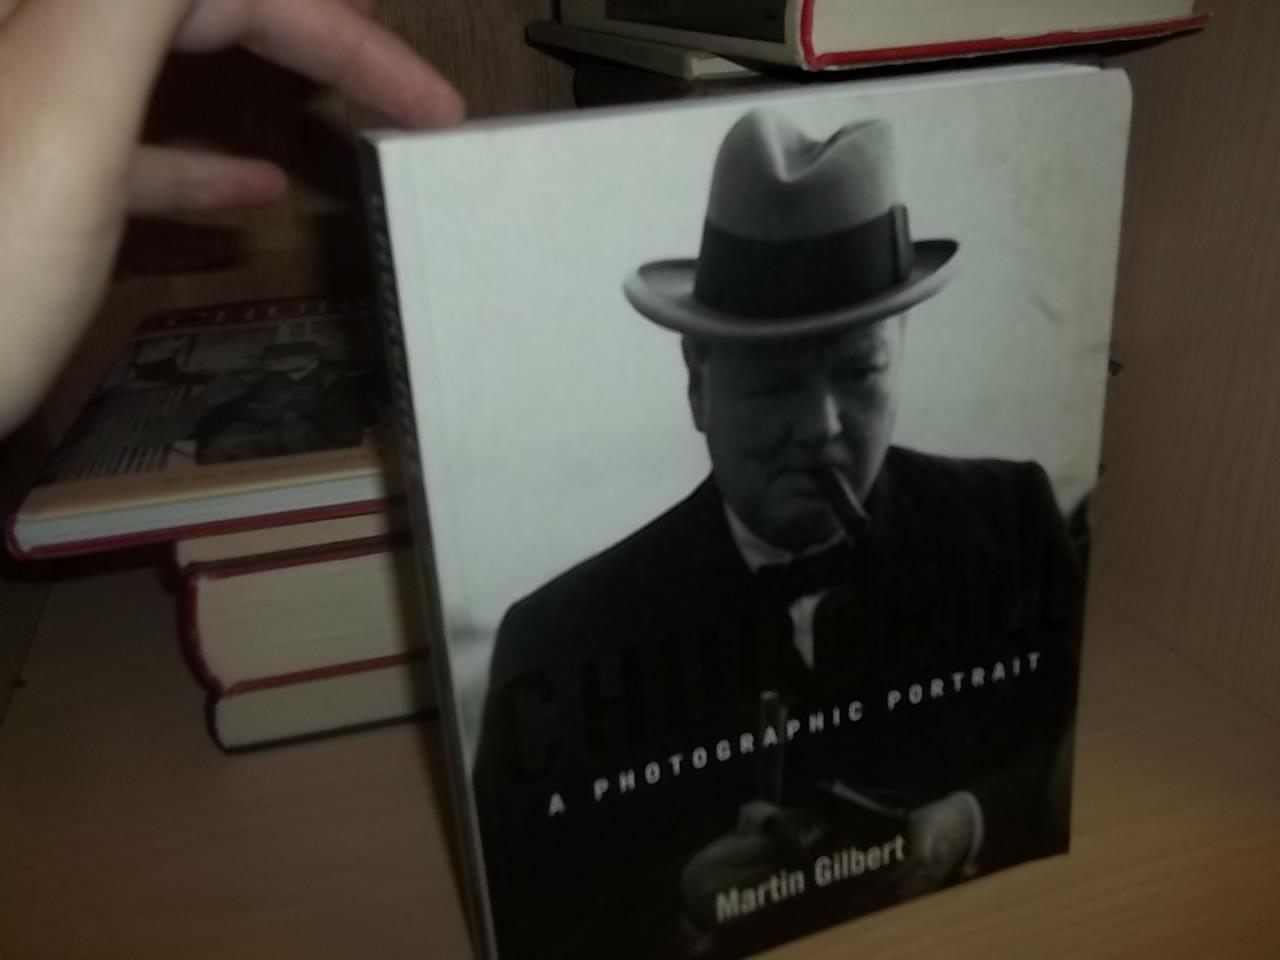 Churchill : A Photographic Portrait - Gilbert, Martin